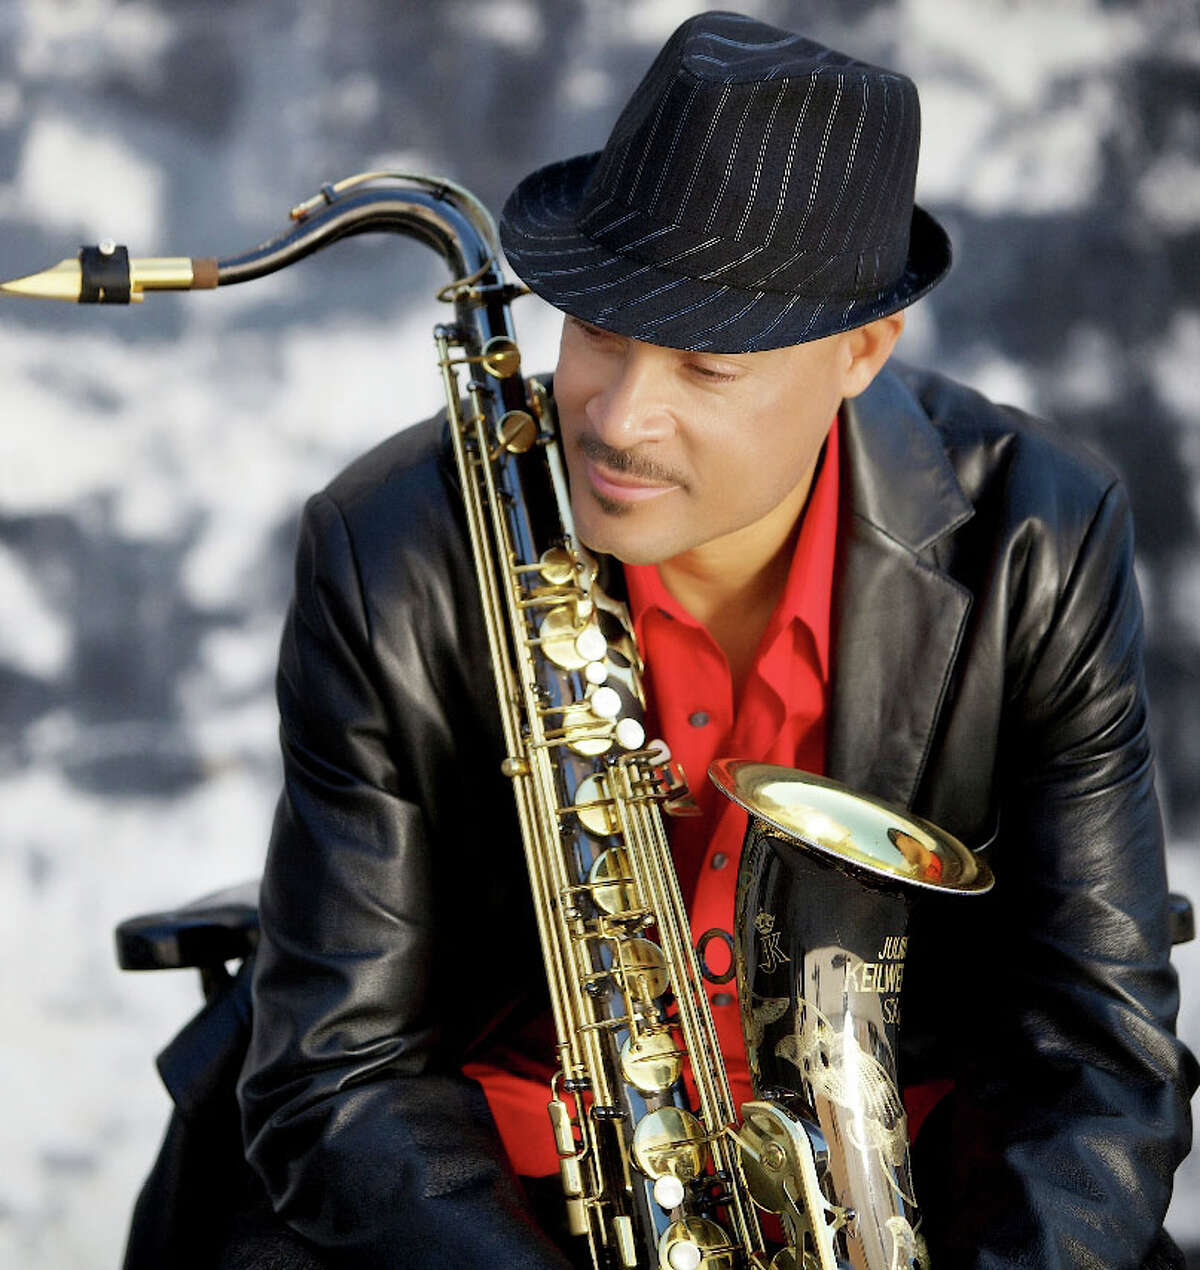 July 12 - August 9: 20th Annual Balcones Heights Jazz Festival. FREE event at Wonderland of the Americas Ampitheater 4522 Fredericksburg Rd. Visit Website